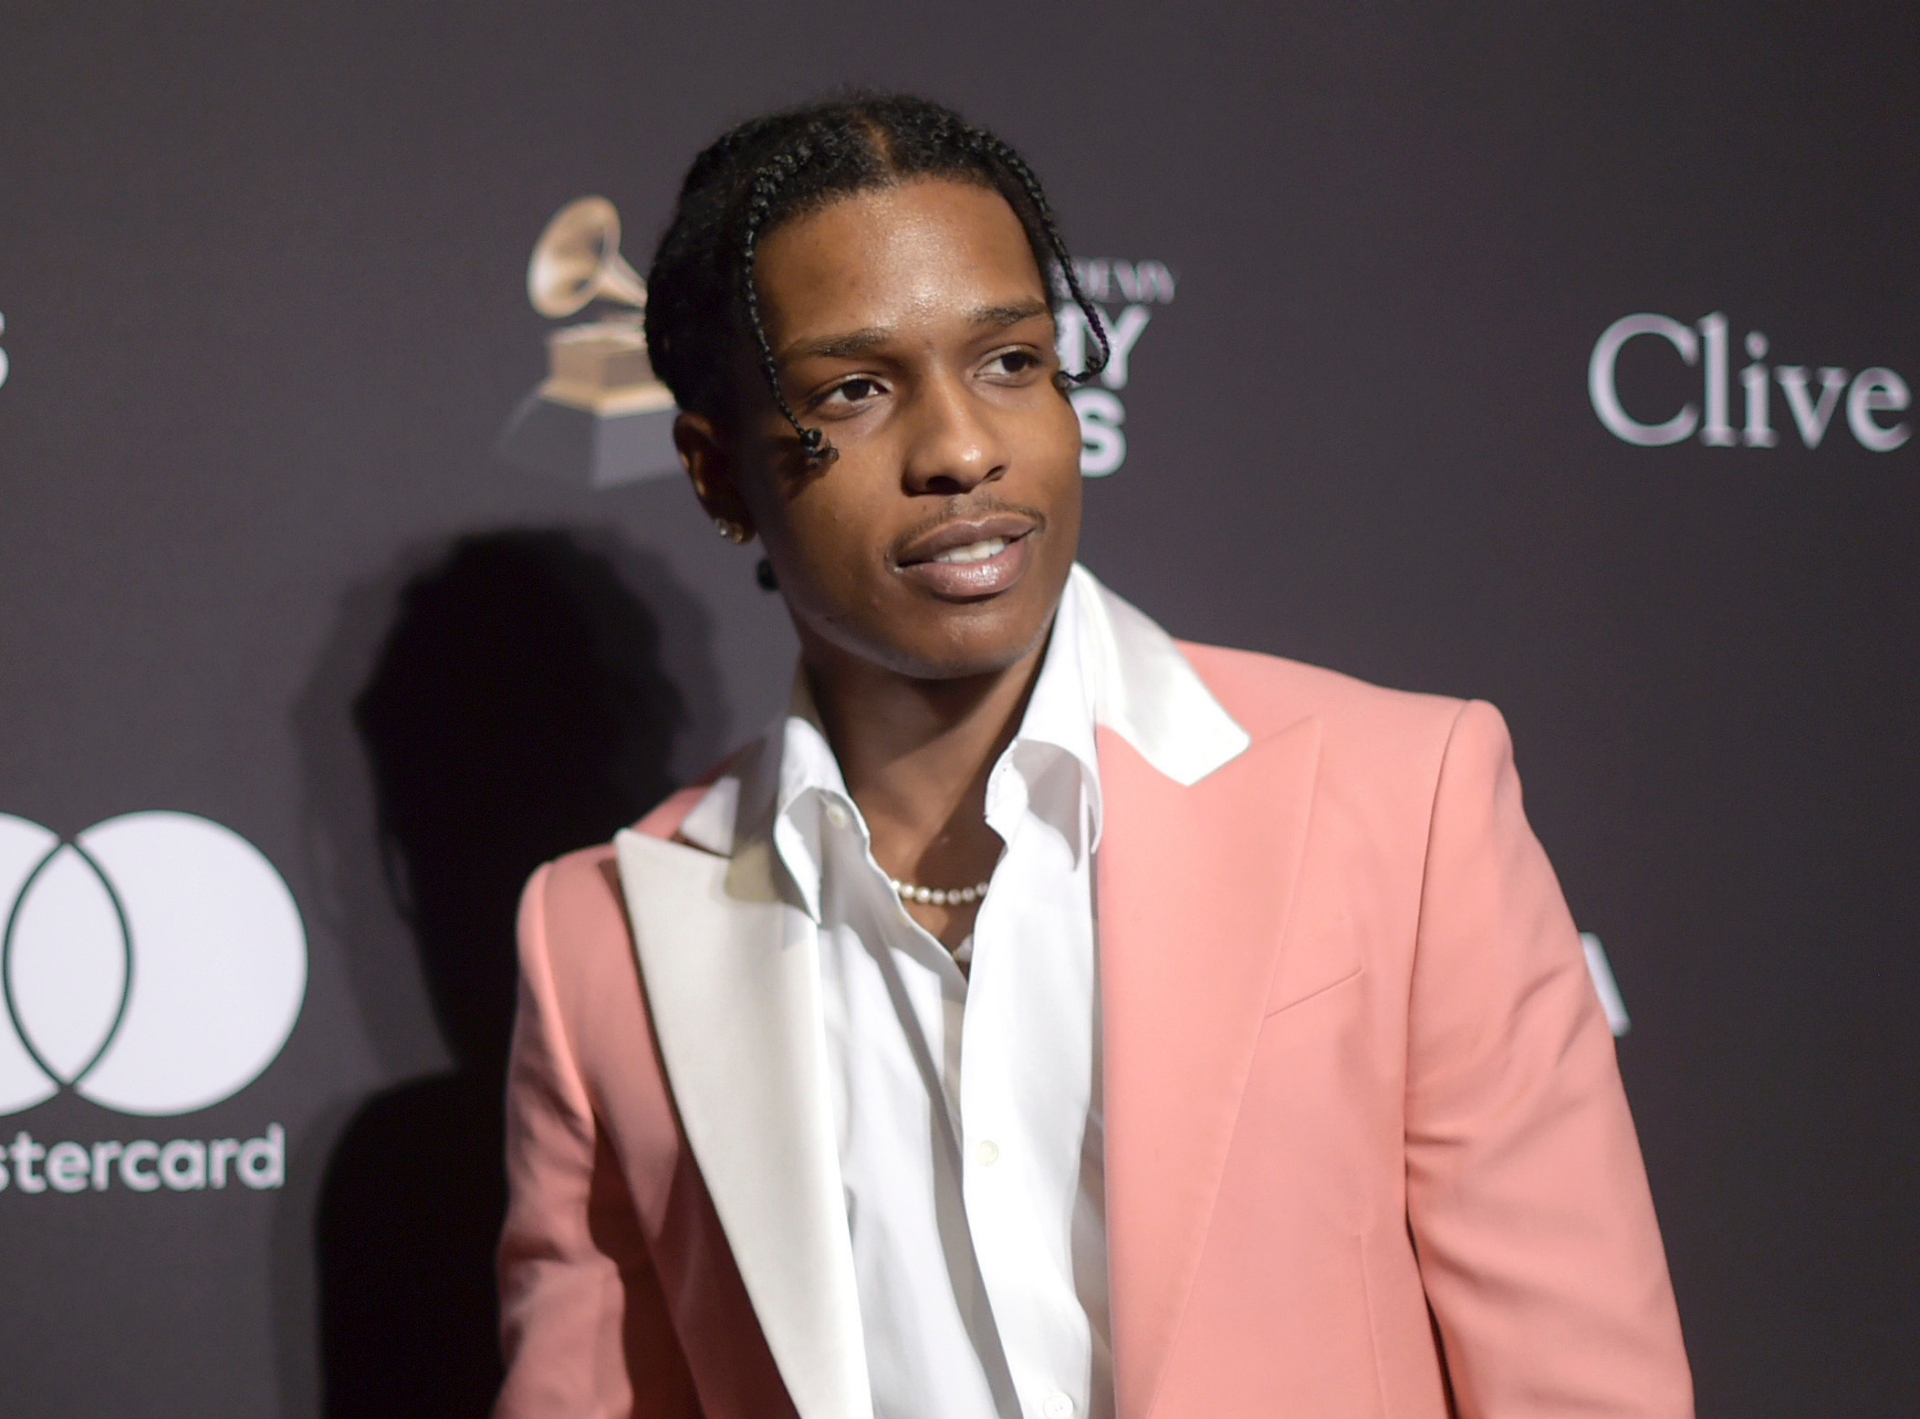 A$AP Rocky lands in Los Angeles after release from Swedish jail